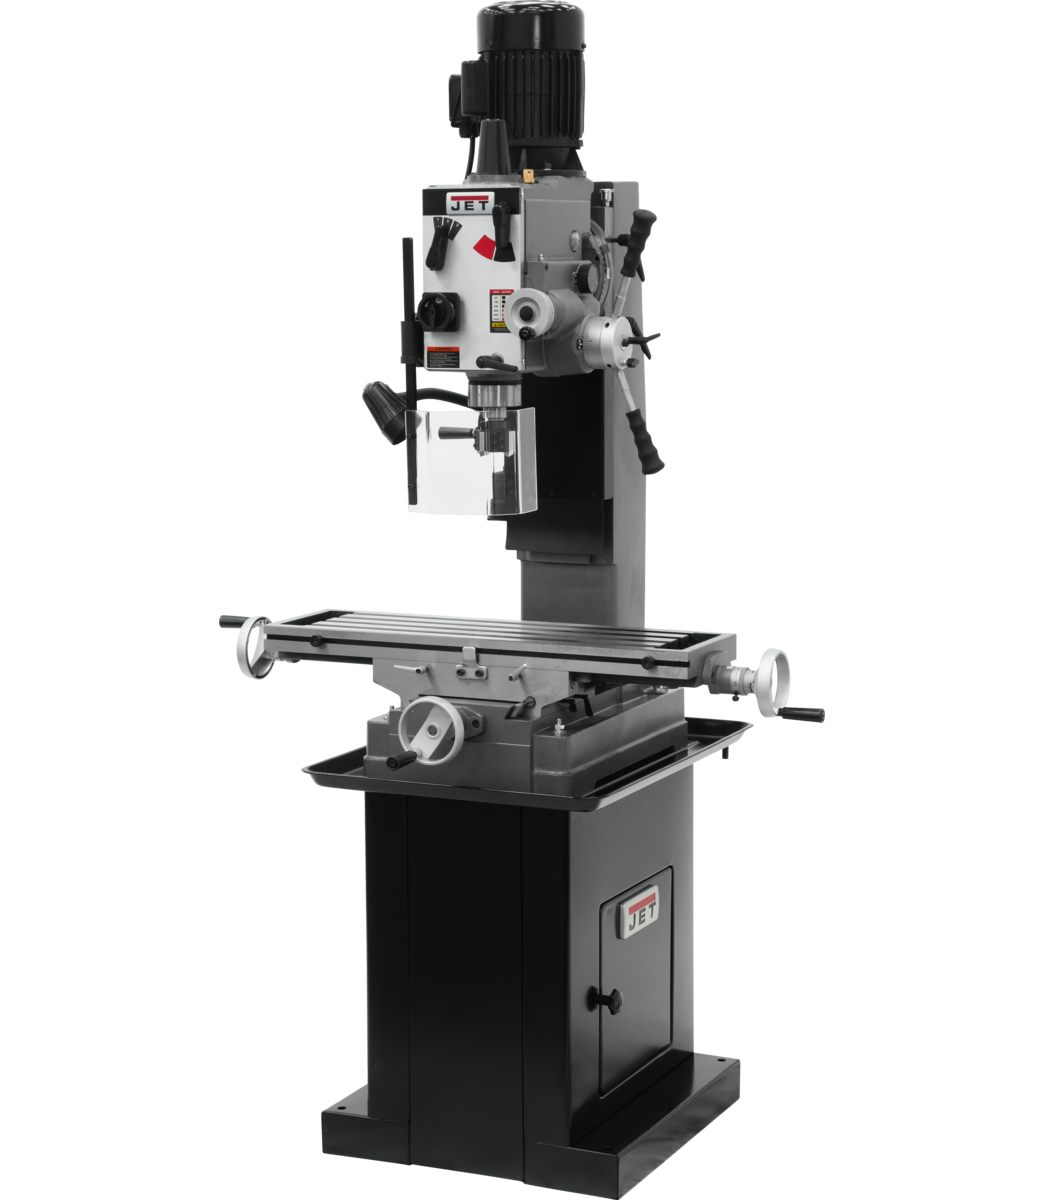 JMD-45GHPF Geared Head Square Column Mill/Drill with Power Downfeed with DP700 2-Axis DRO & X-Axis Powerfeed